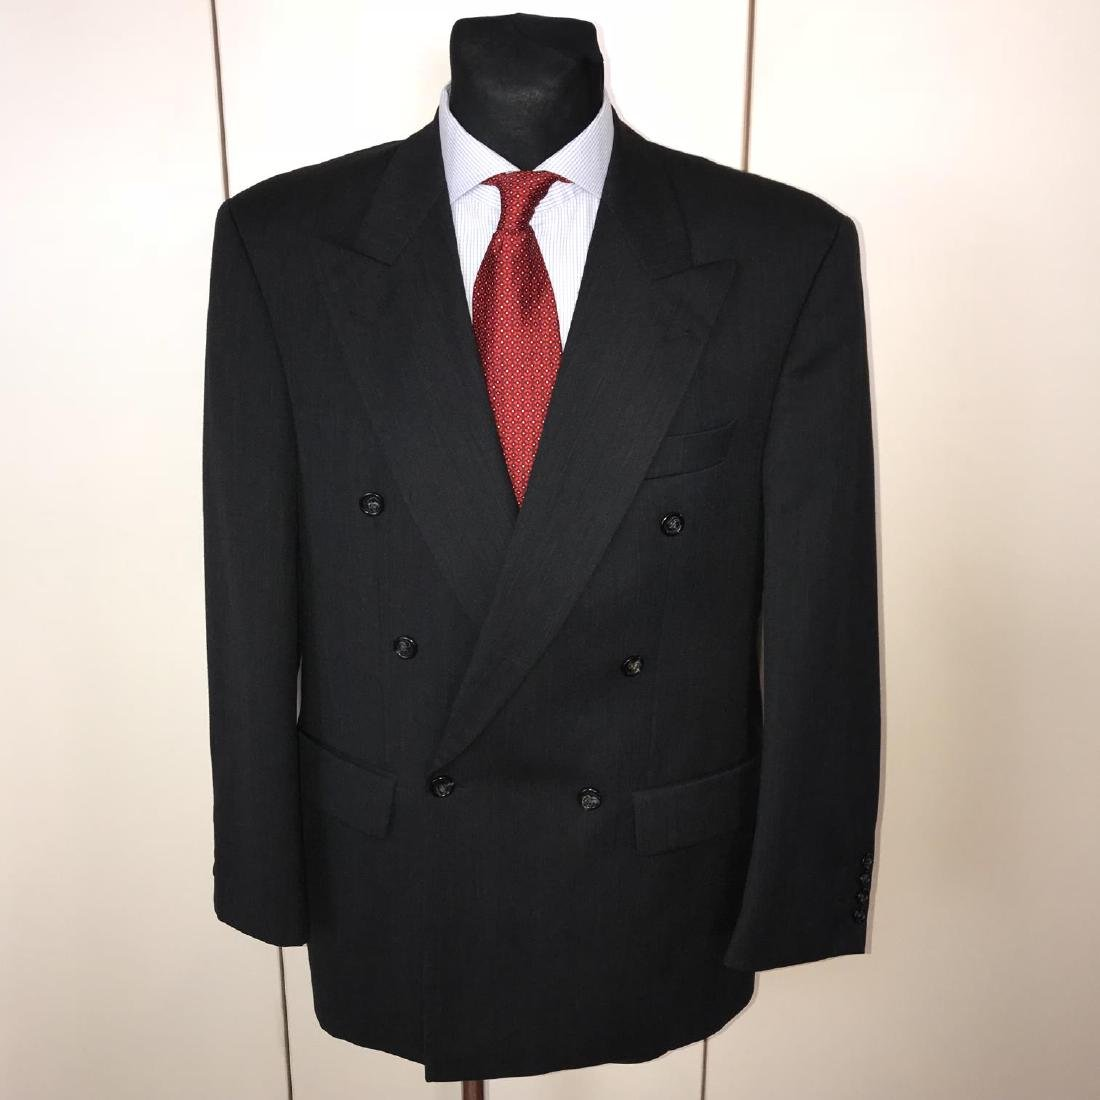 Vintage Men's Yves Saint Laurent YSL Jacket Blazer Size